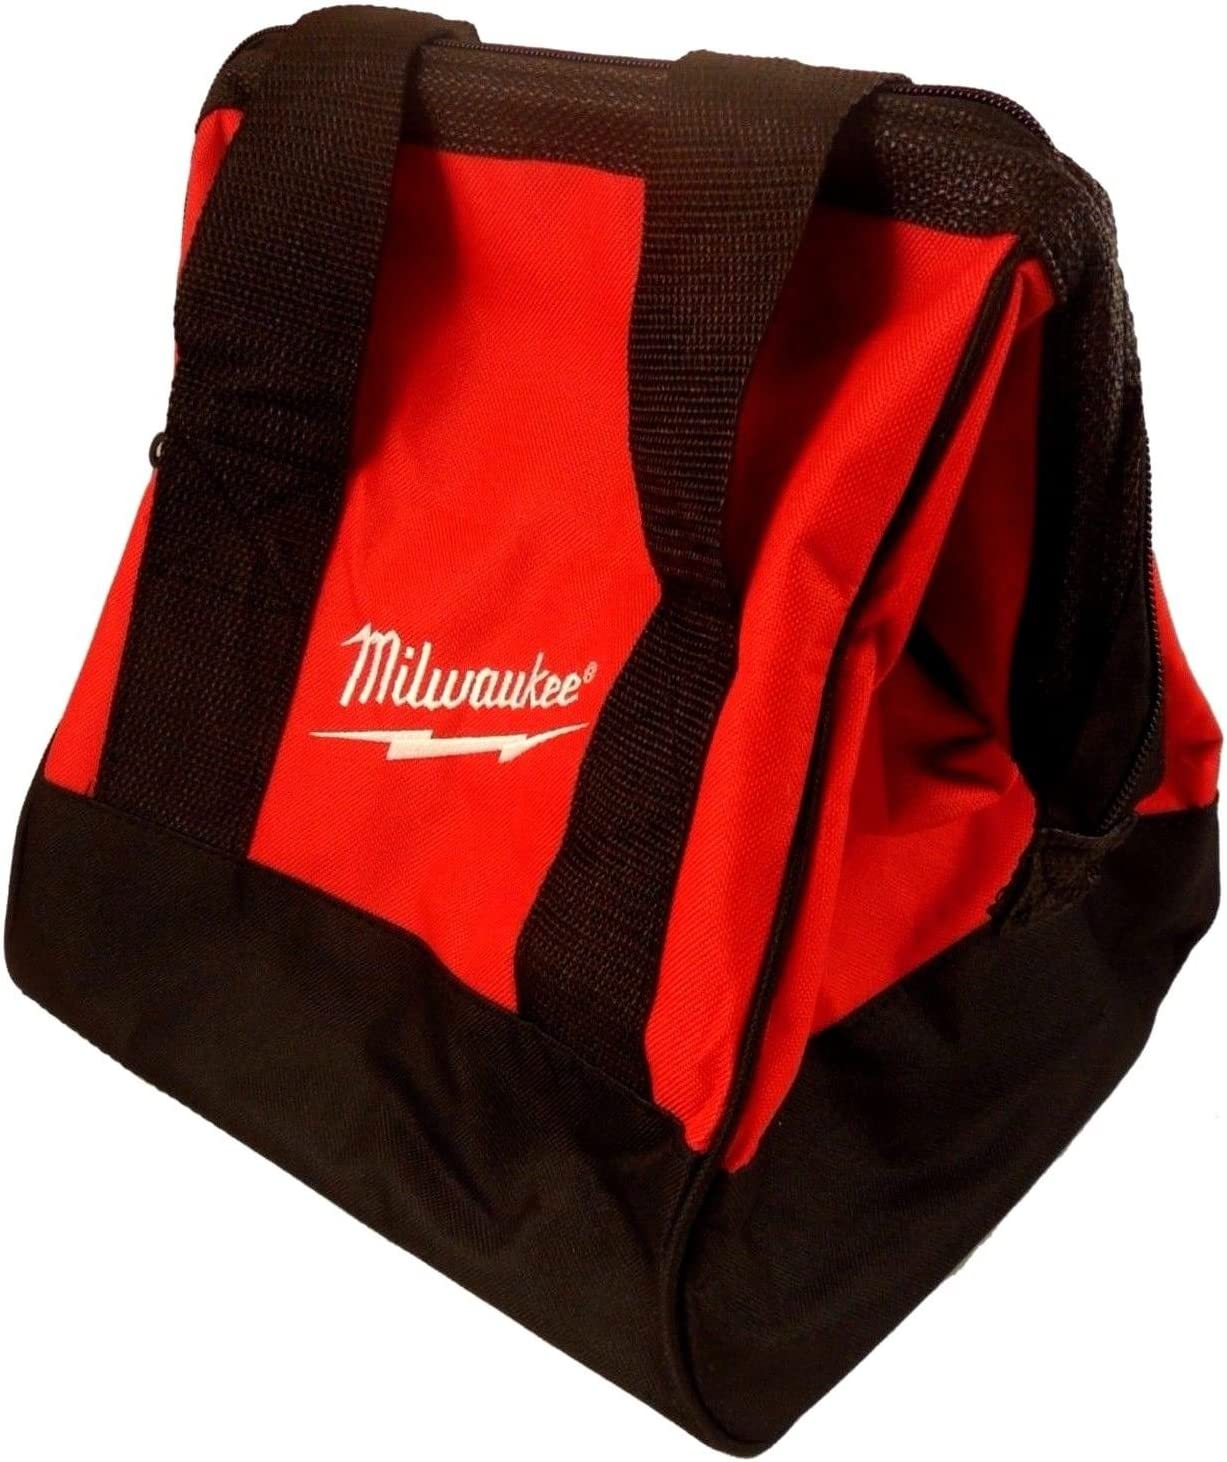 New Milwaukee Contractor Tool Dallas Mall Bag 11' 2607-20 265 In stock X For 10